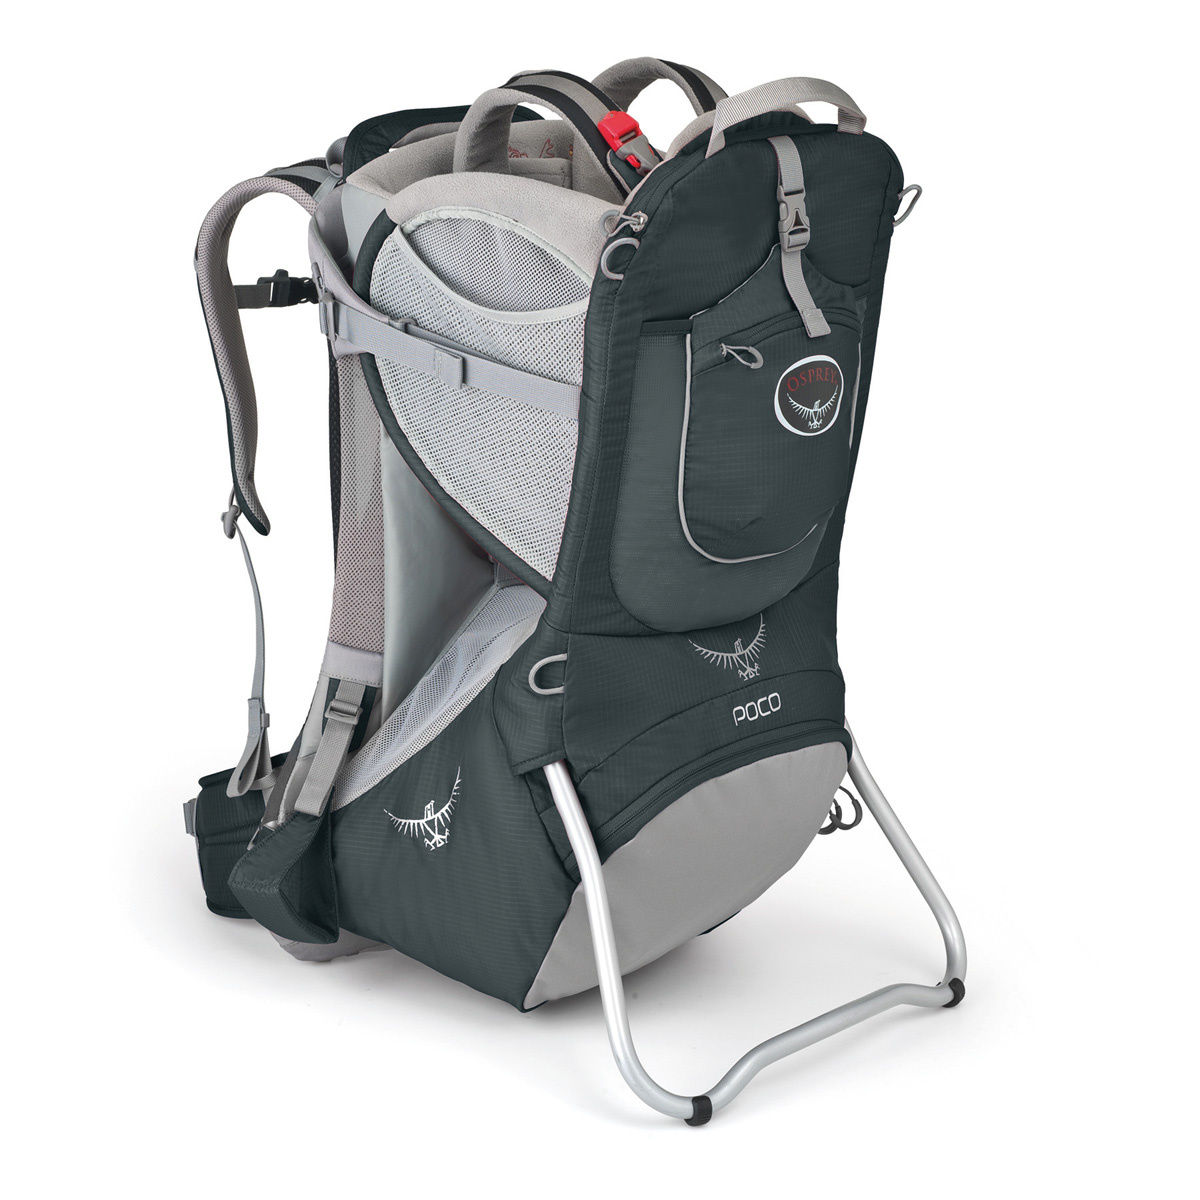 New Kit: Osprey Poco child carrier